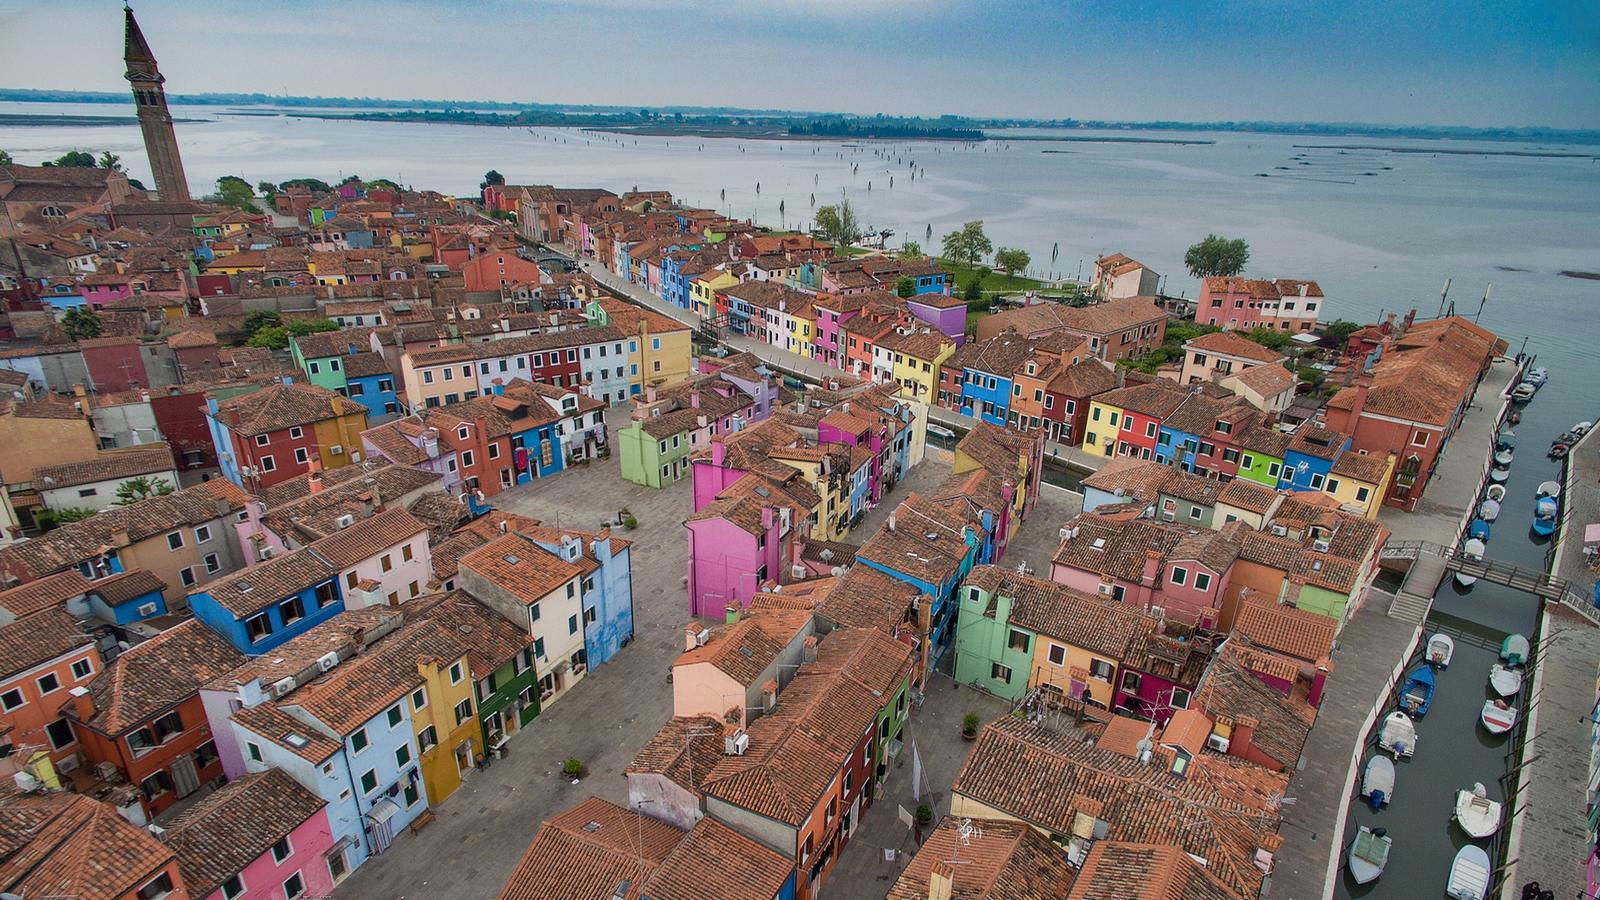 Burano island from above